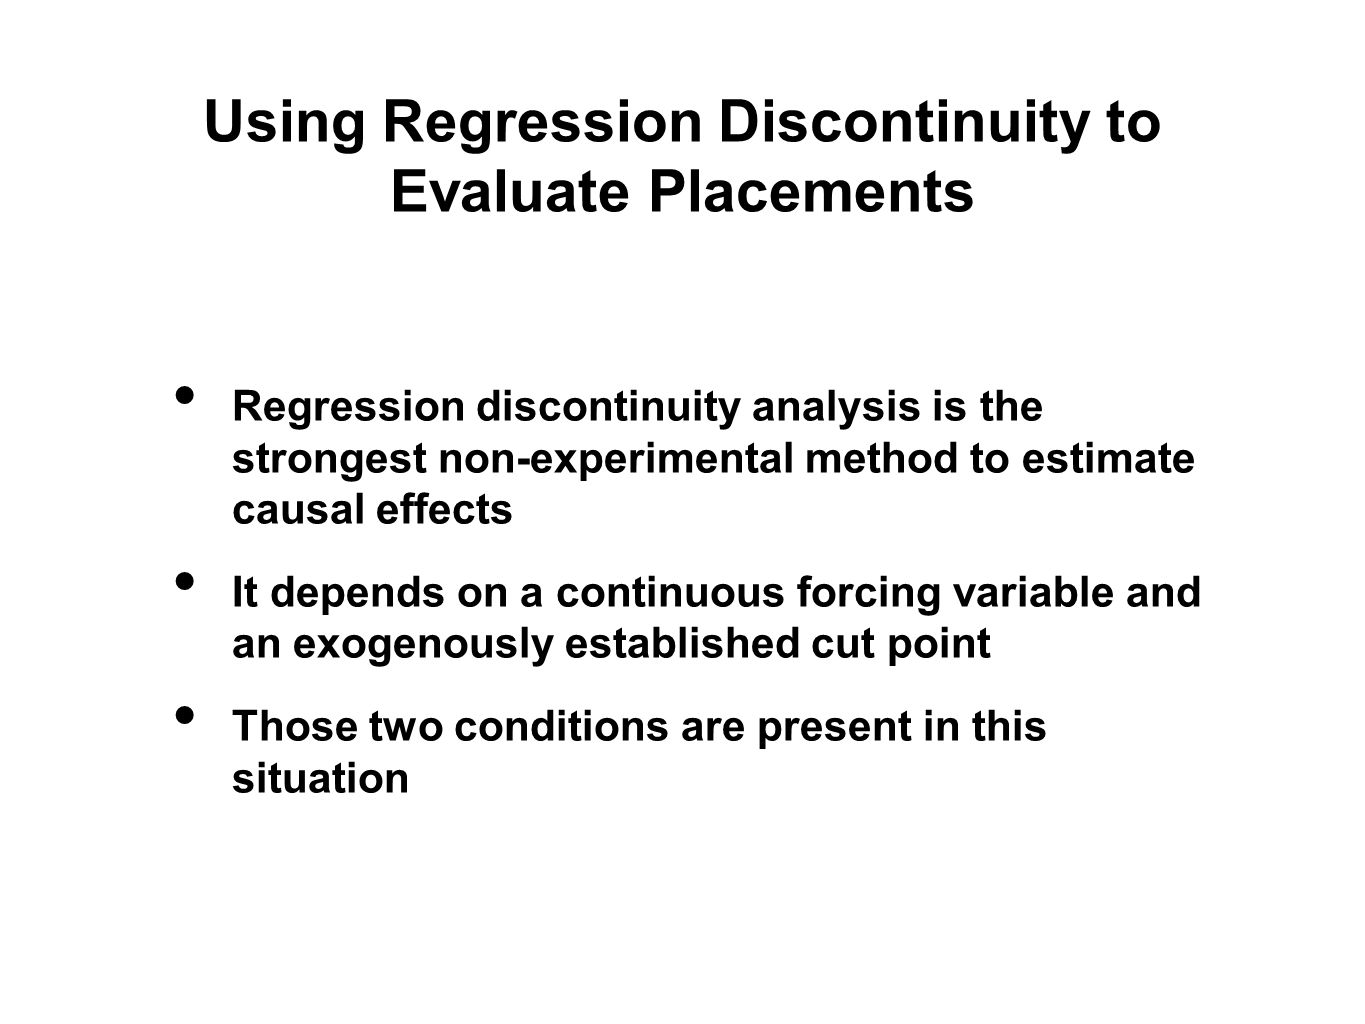 Using Regression Discontinuity to Evaluate Placements Regression discontinuity analysis is the strongest non-experimental method to estimate causal effects It depends on a continuous forcing variable and an exogenously established cut point Those two conditions are present in this situation